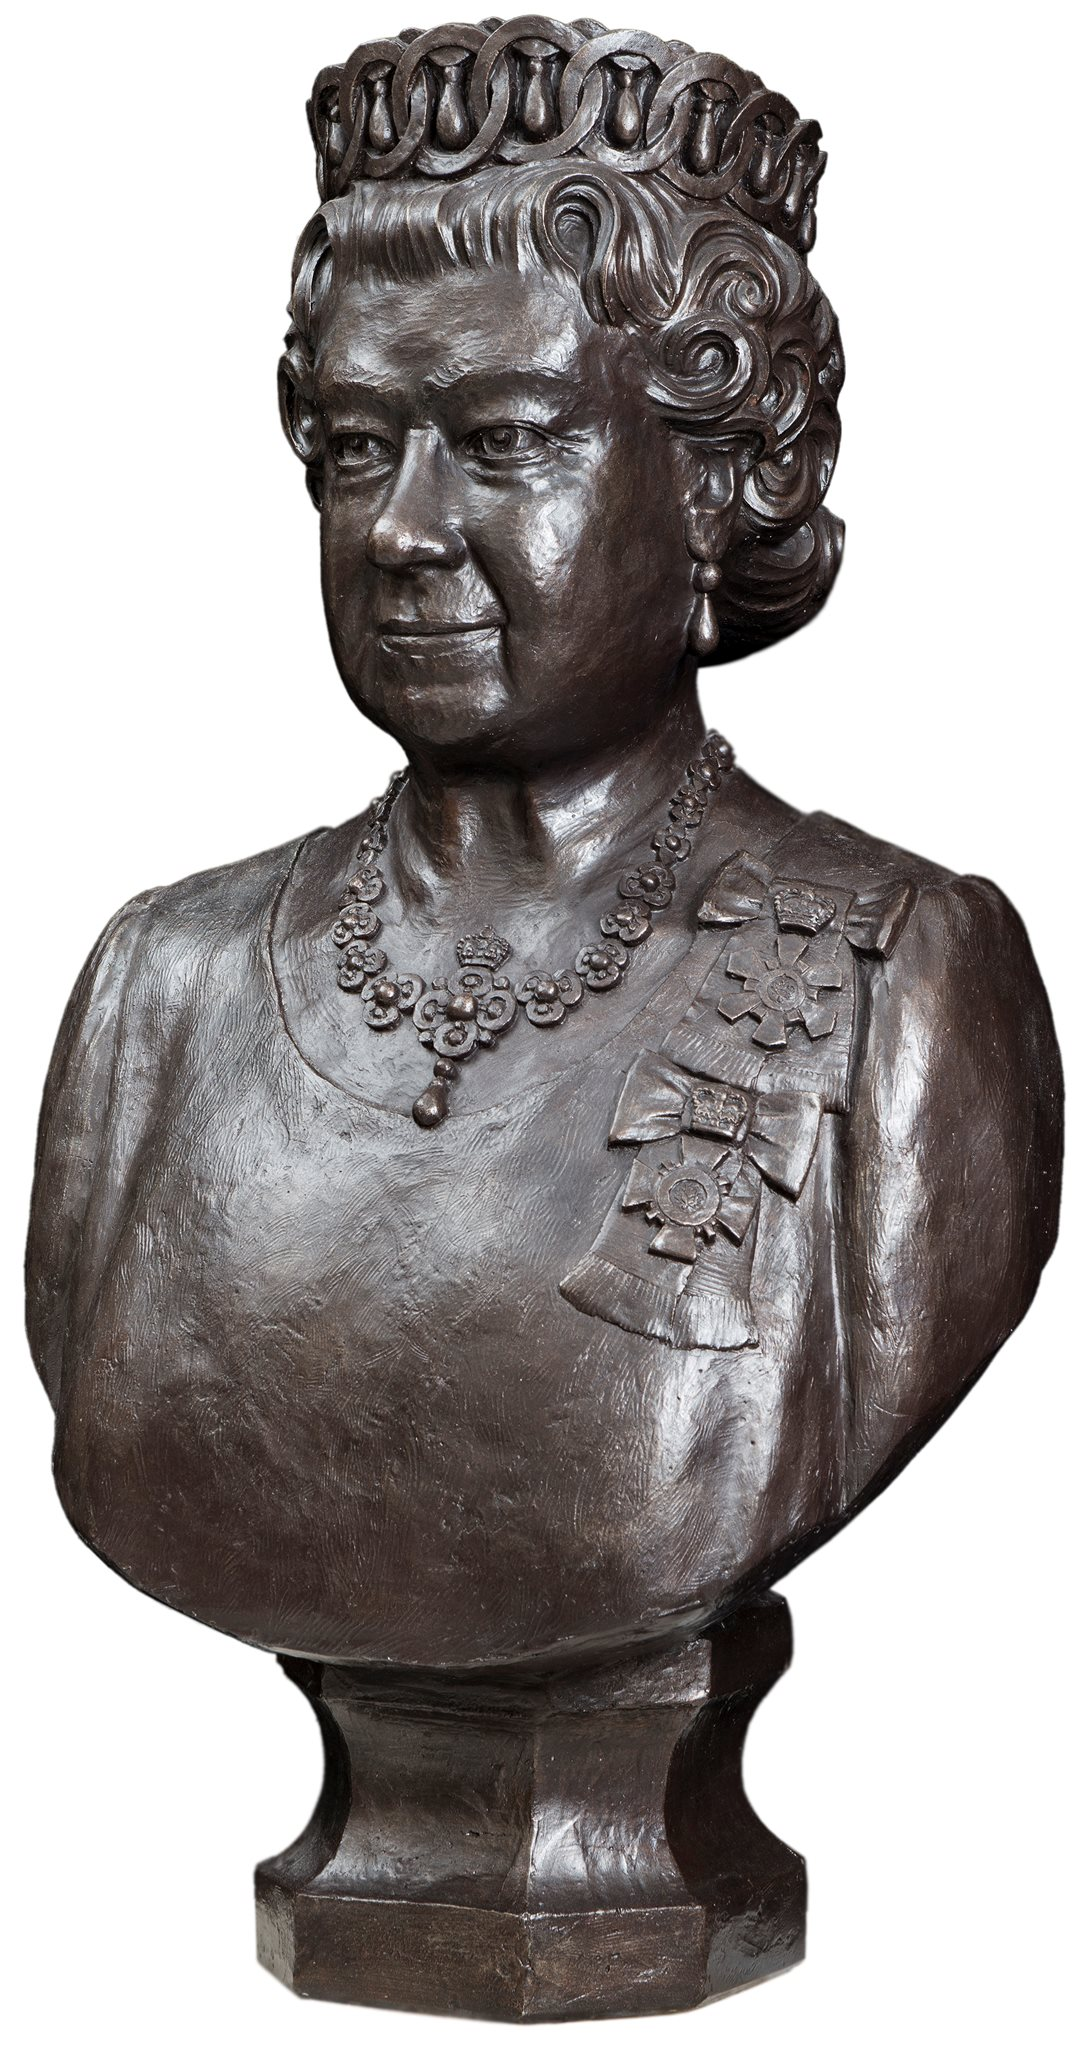 This bronze portrait bust of Queen Elizabeth II was created by Dominion Sculptor Phil White for the Queen's Diamond Jubilee in 2012 and will soon move to the Senate of Canada Building.